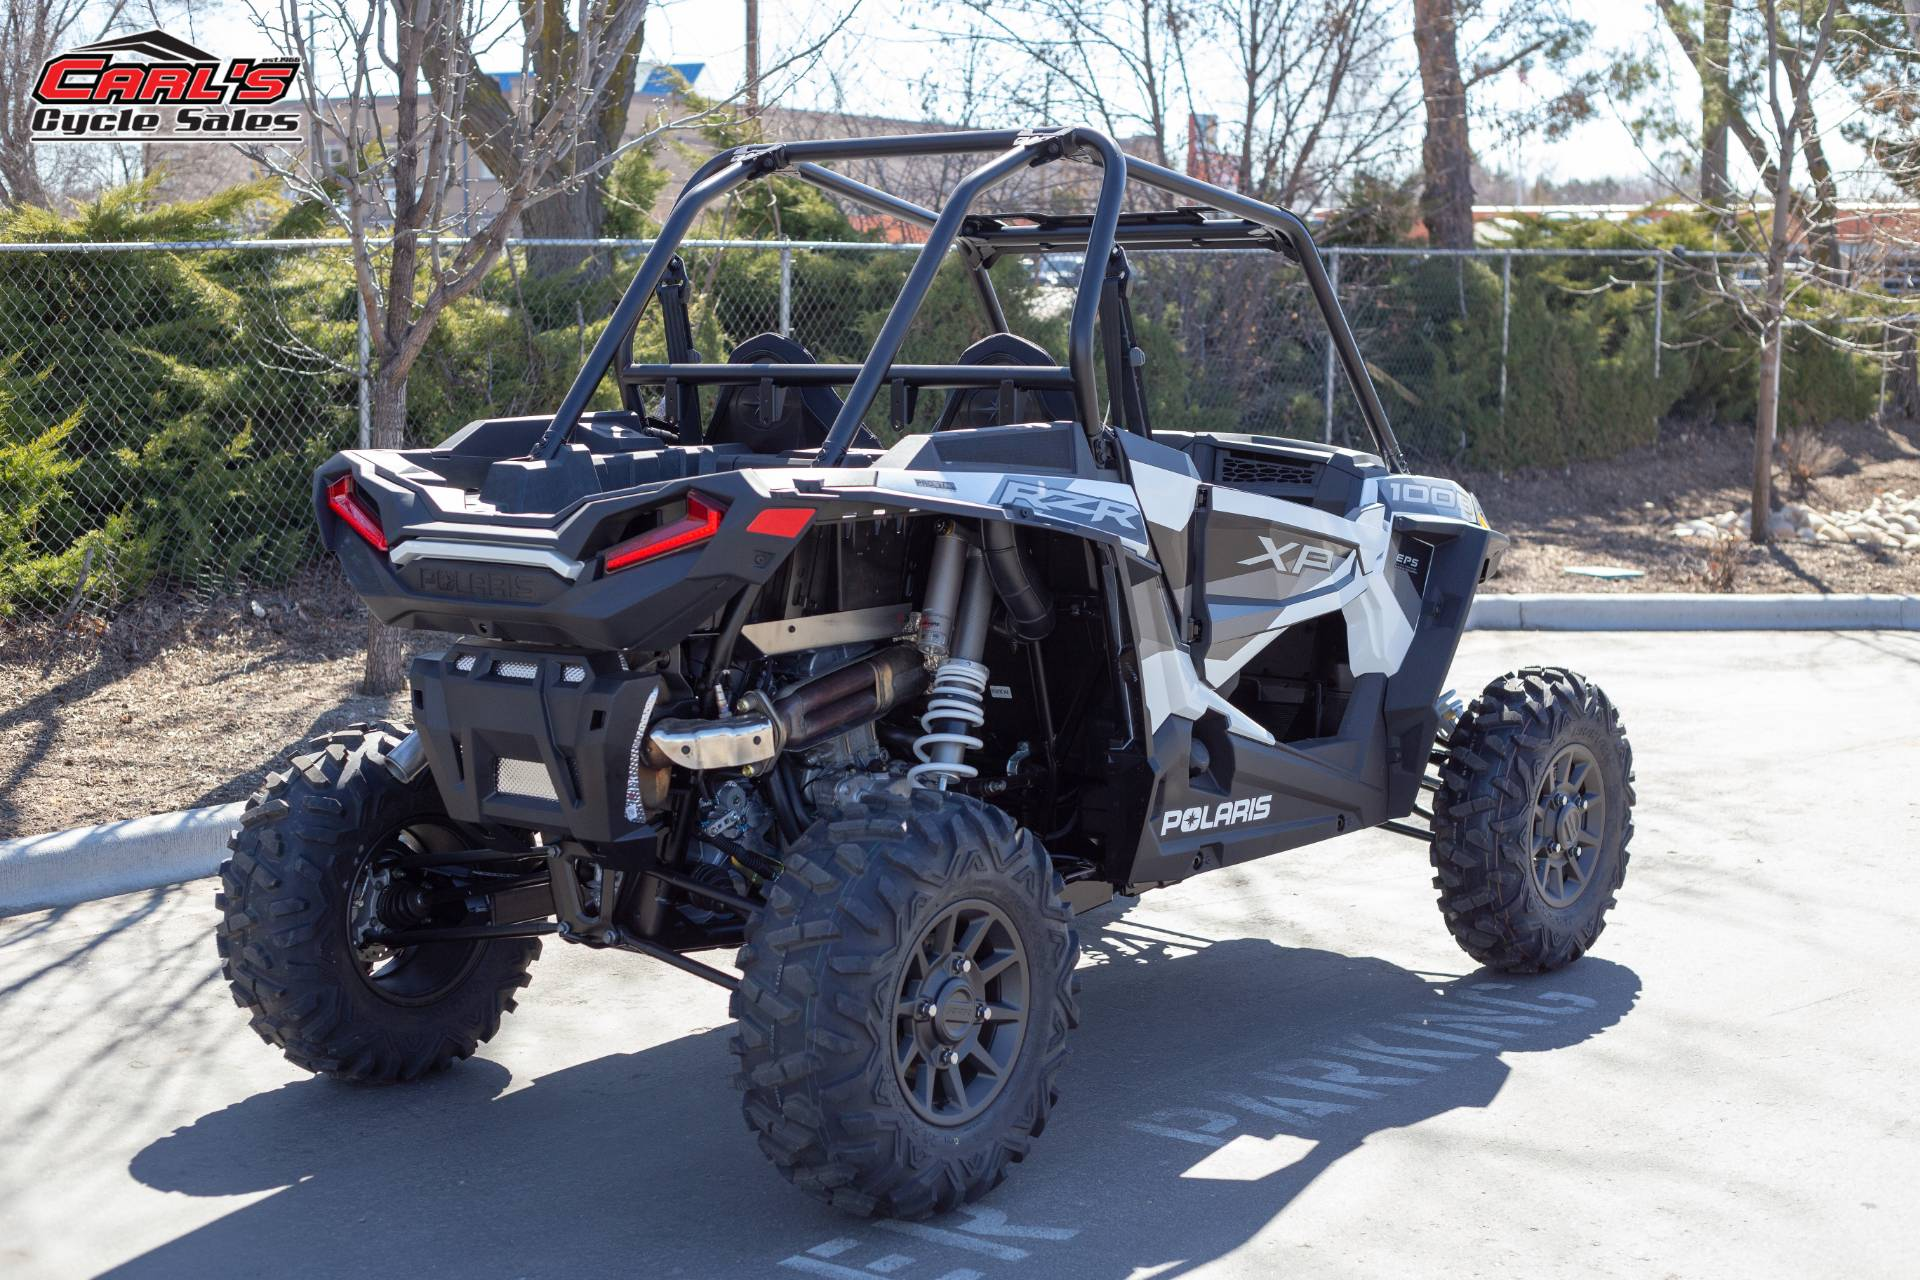 2019 Polaris RZR XP 1000 in Boise, Idaho - Photo 7